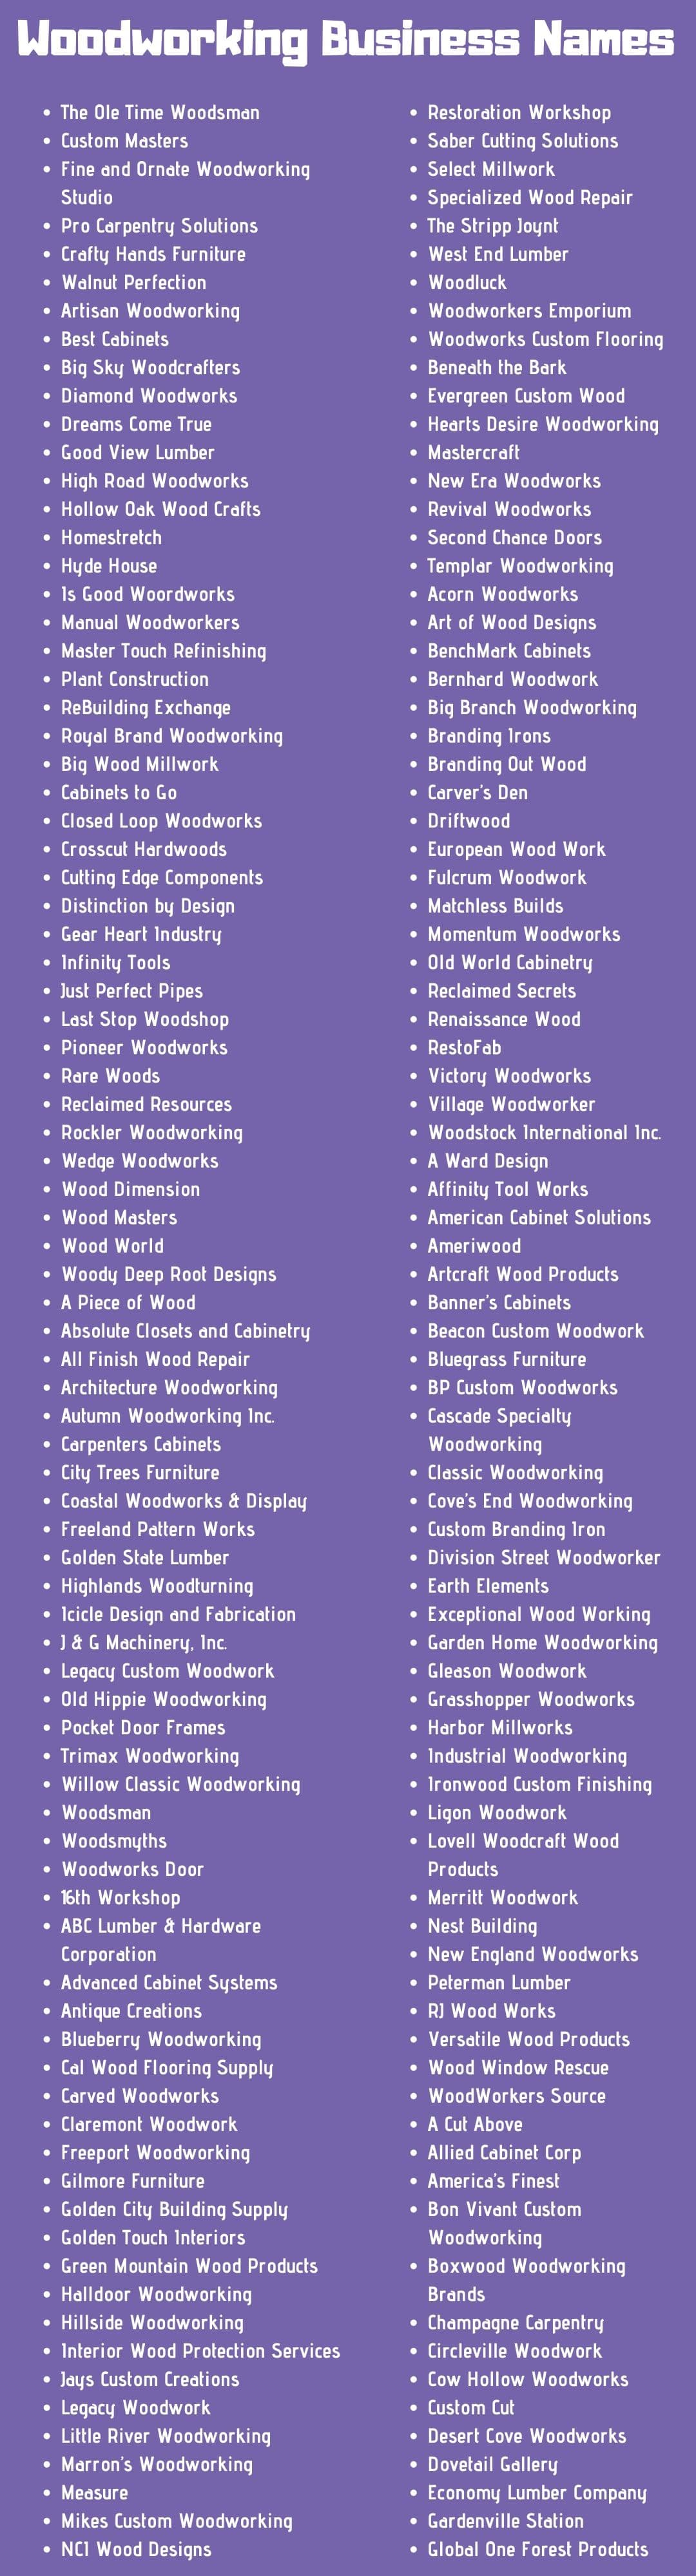 Woodworking Business Names 400 Names For Woodworking Business